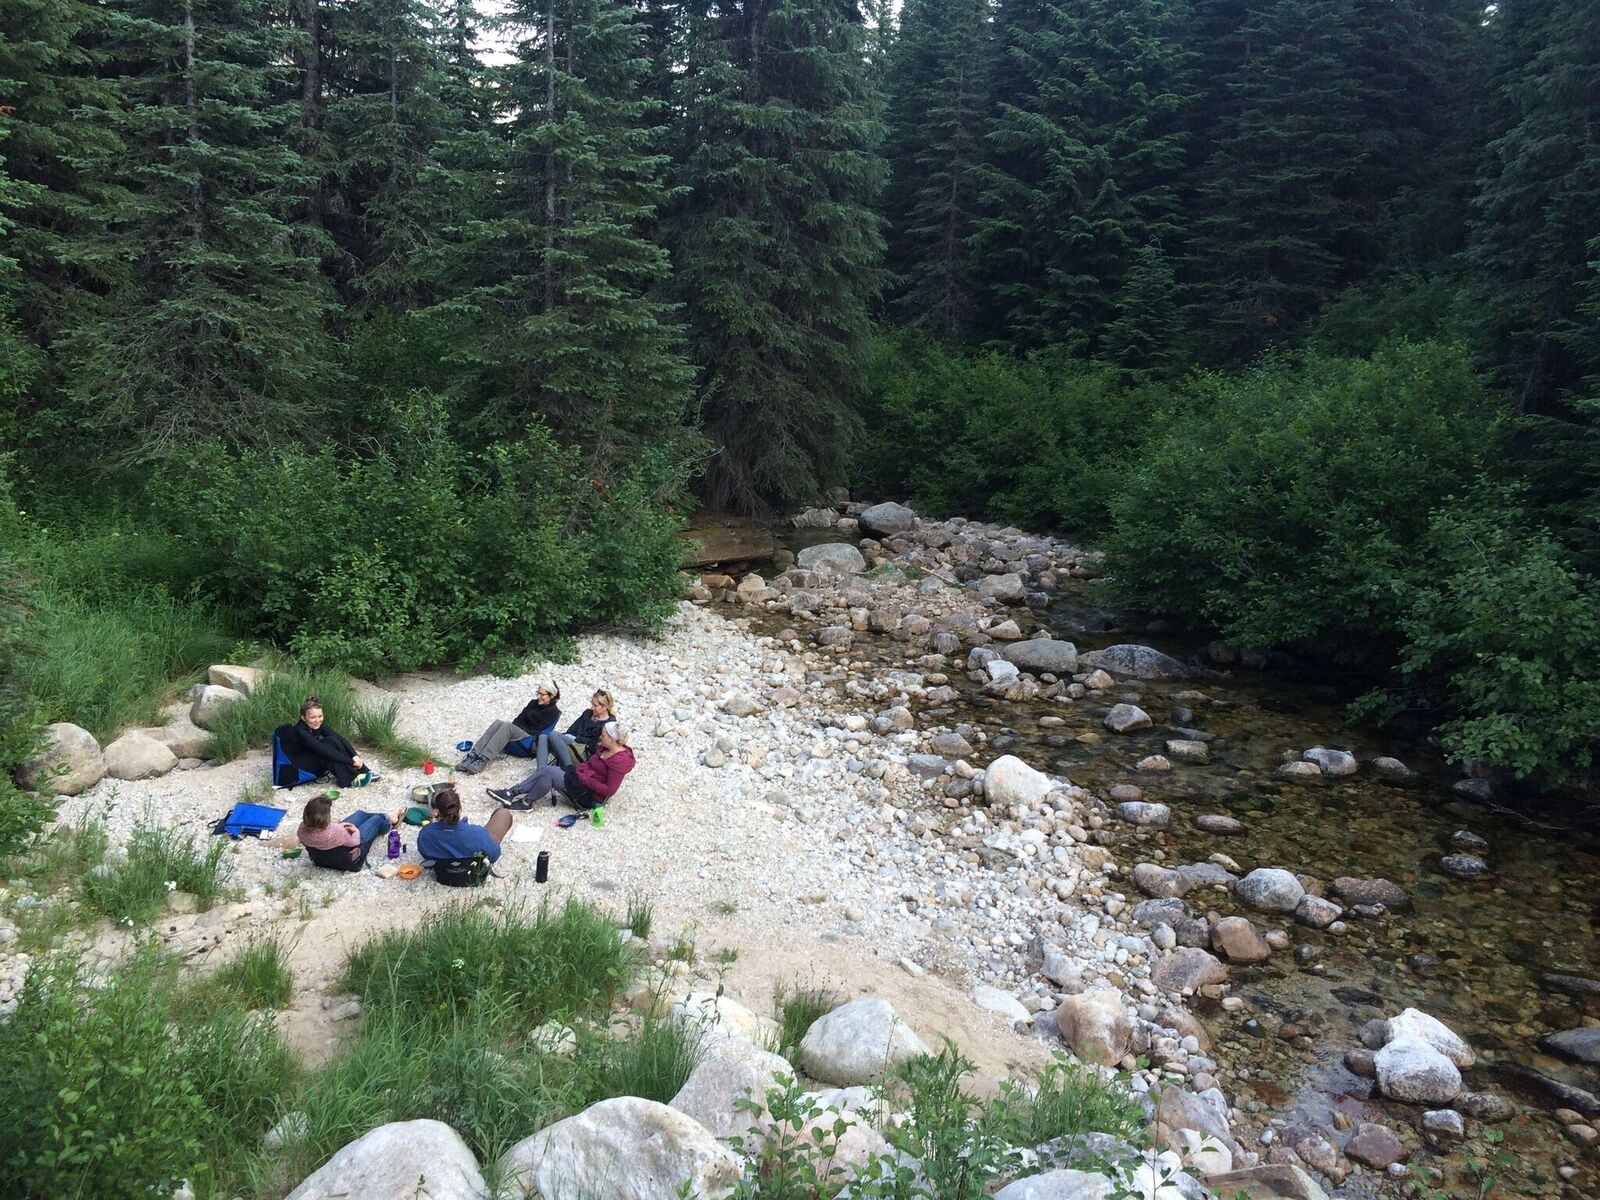 Group camping in the woods by a stream, aerial view